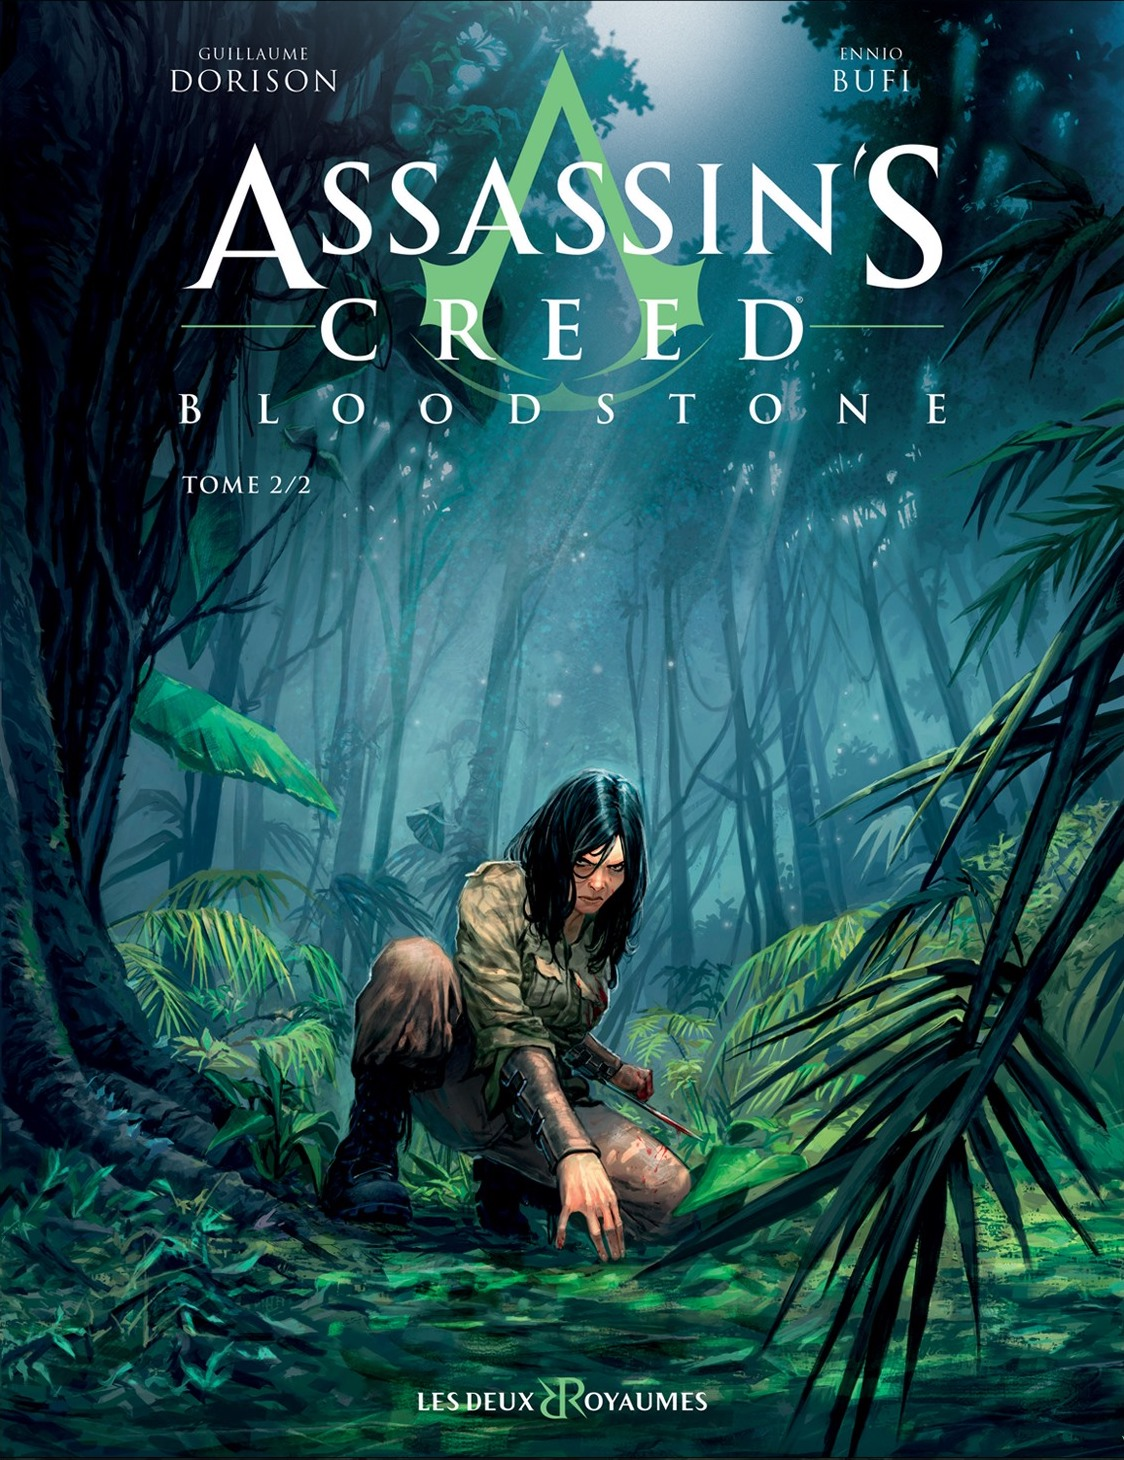 Assassin S Creed Bloodstone Book 2 Assassin S Creed Wiki Fandom